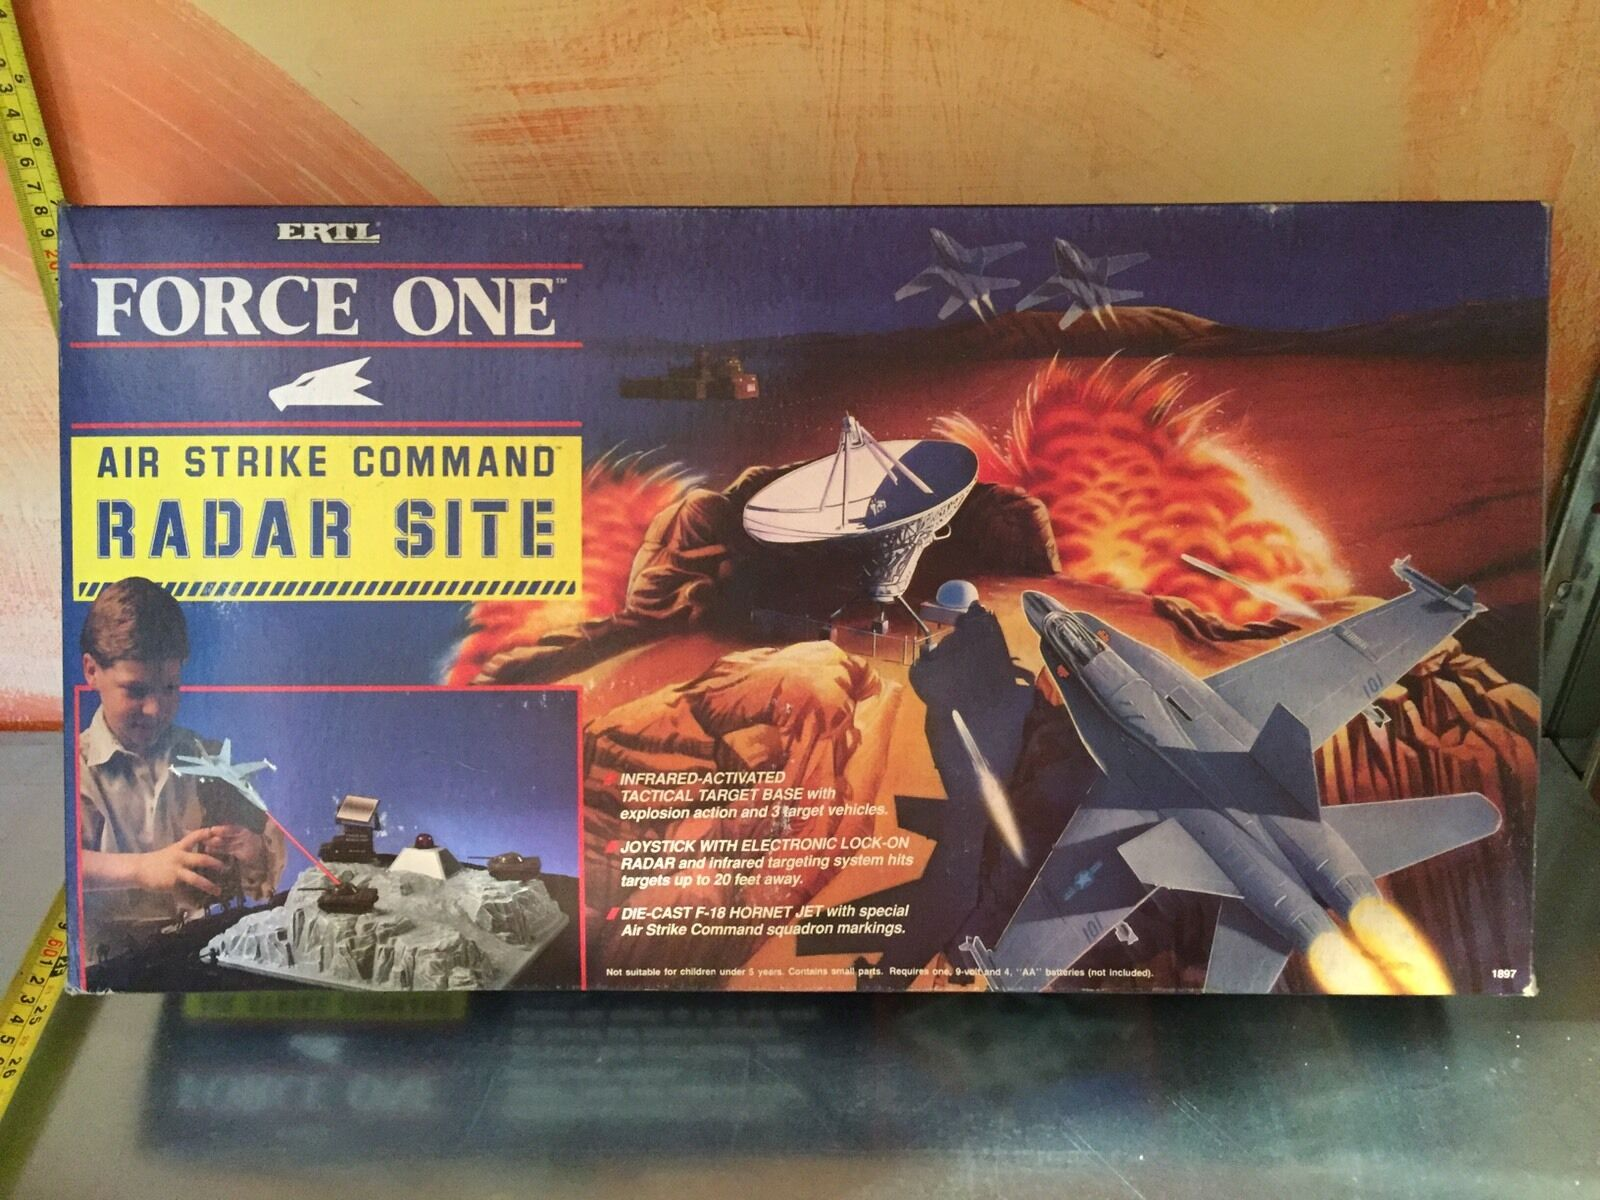 ERTL FORCE ONE RADAR SITE VINTAGE DEAD STOCK PERFECT